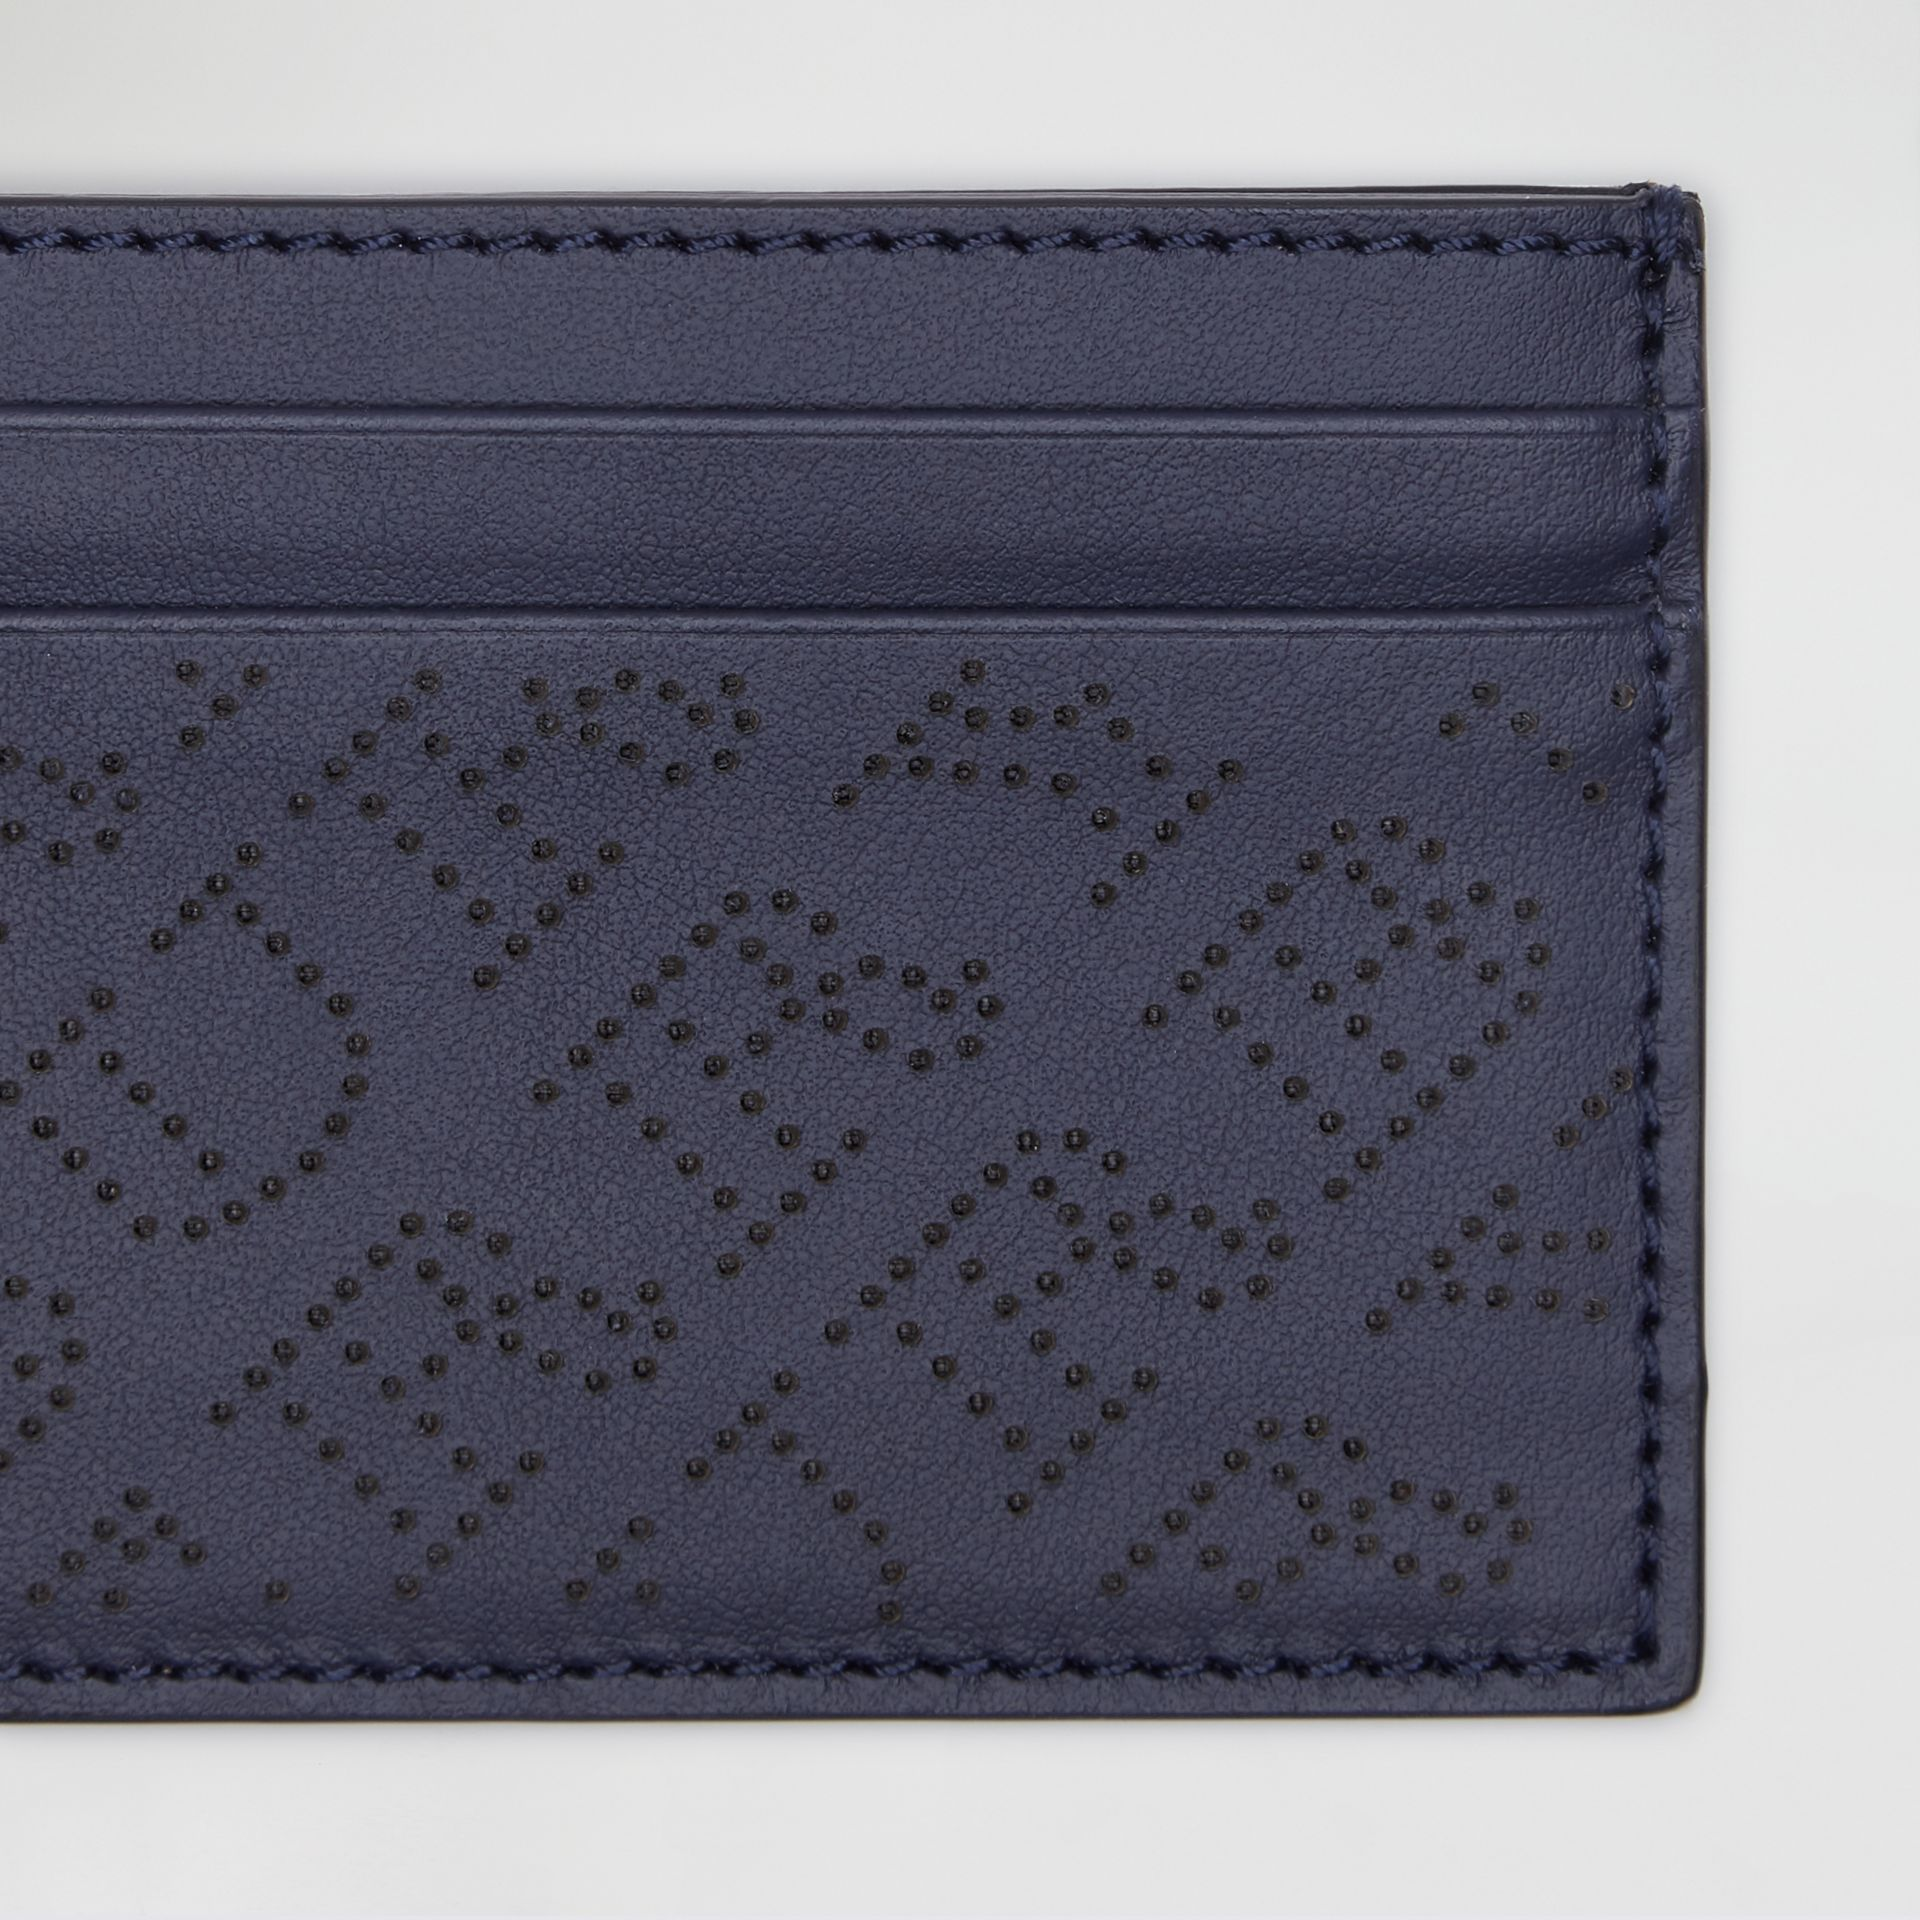 Perforated Logo Leather Card Case in Navy - Women | Burberry Singapore - gallery image 1